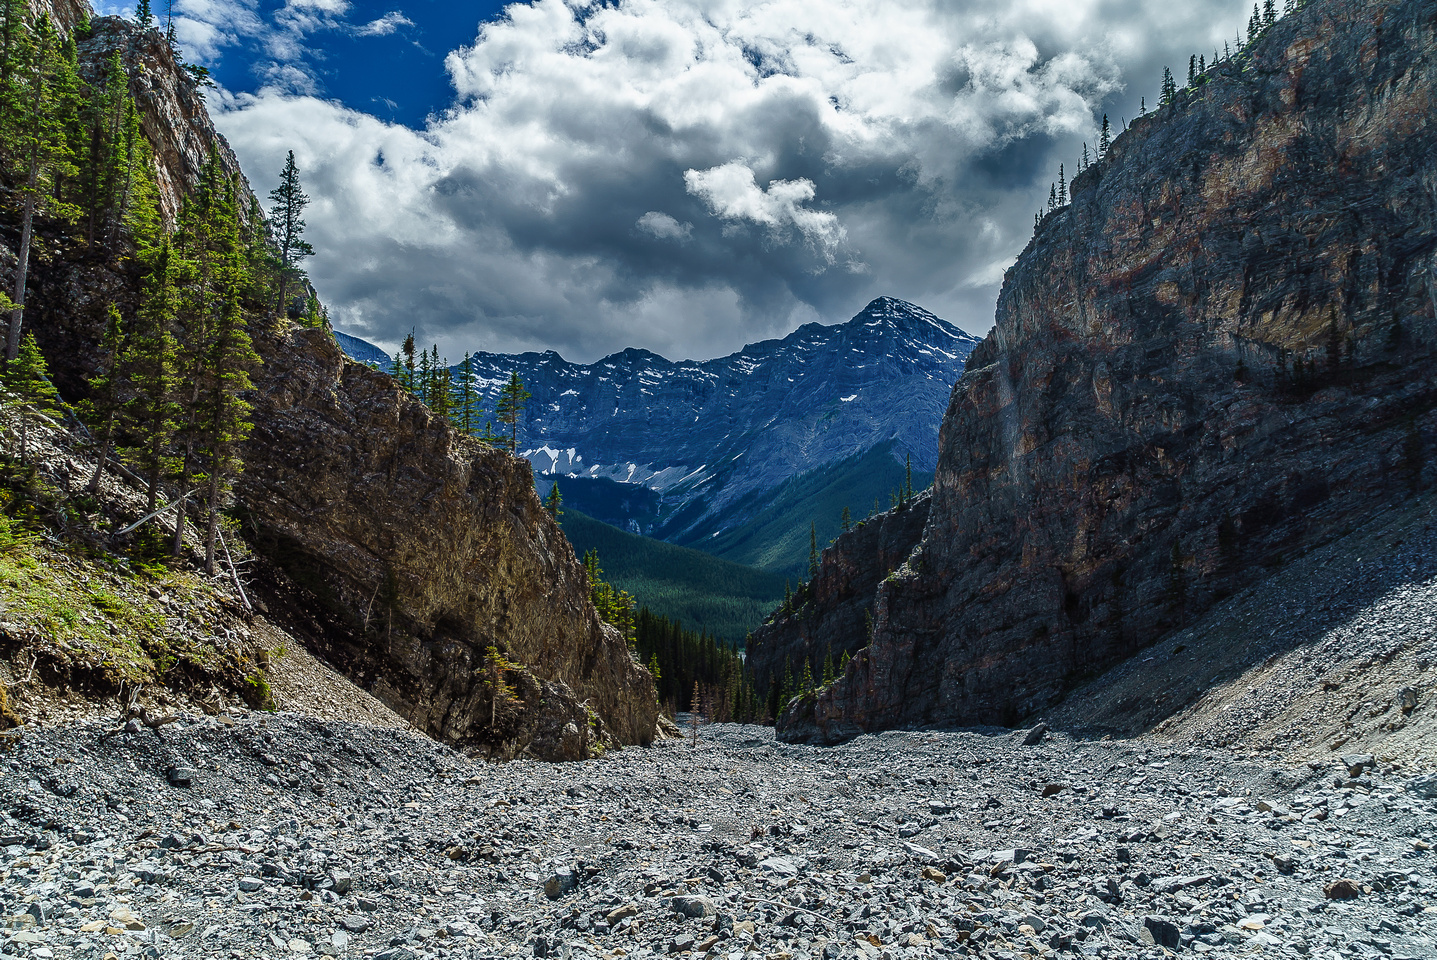 A cleared out creekbed awaits us on descent back to the Spray Lakes.